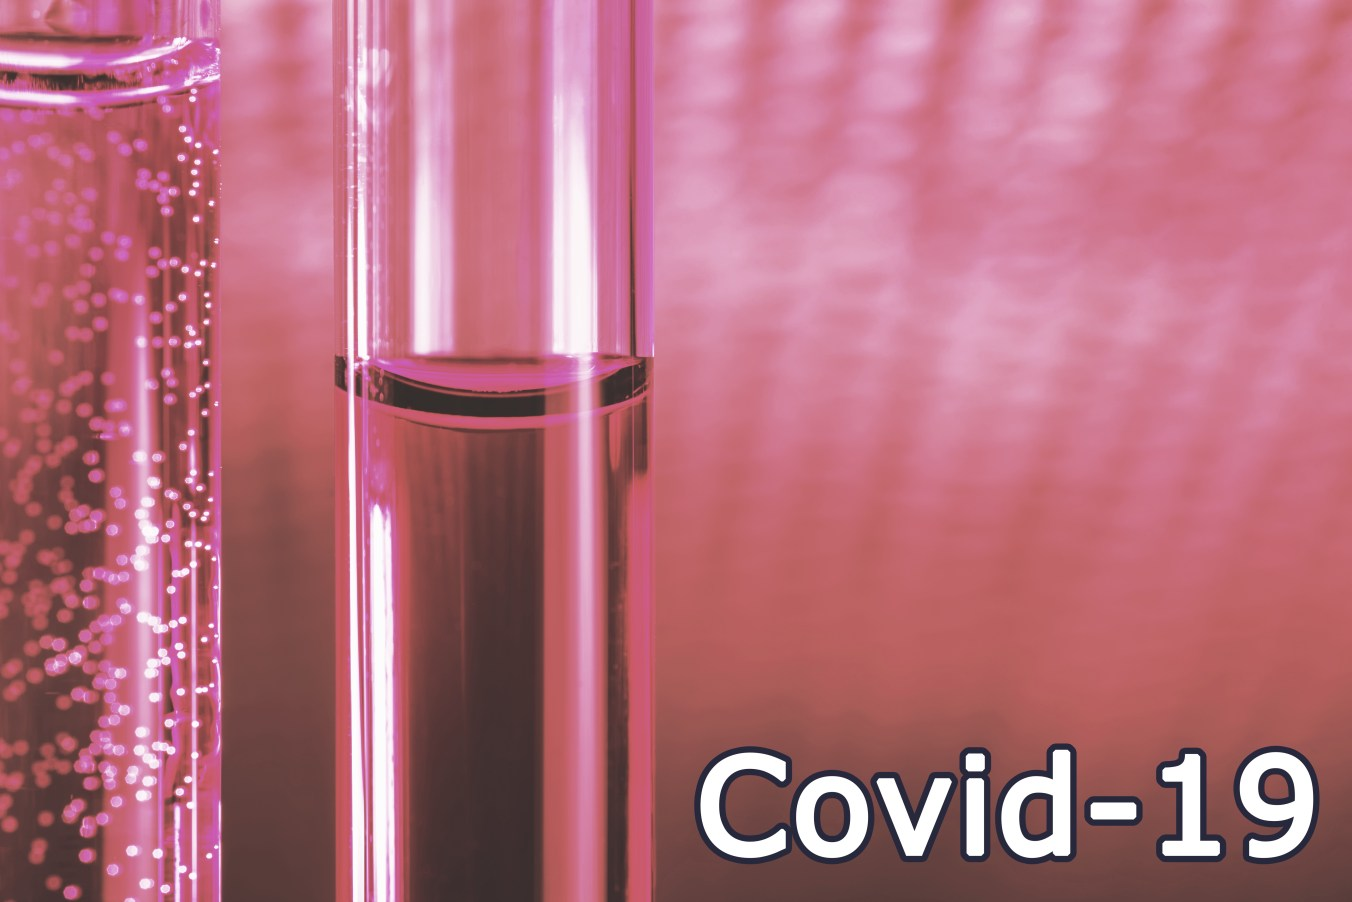 Covid-19. Red liquid vaccine in glass tubes.. Cases of COVID-19 illustration. Image credit: Ivan Uralsky. vaccine hesitancy concept. Also to illustrate article re: emergency use authorisation. Oxford/AstraZeneca vaccine. Also used in coverage of vaccine hoarding. Vaccination campaign concept. Cost of COVID-19 vaccine concept. vaccine shipments concept. Sputnik V illustration.. Also to illustrate vaccine stockpiling. vaccine drive concept. Blood clots concern concept.